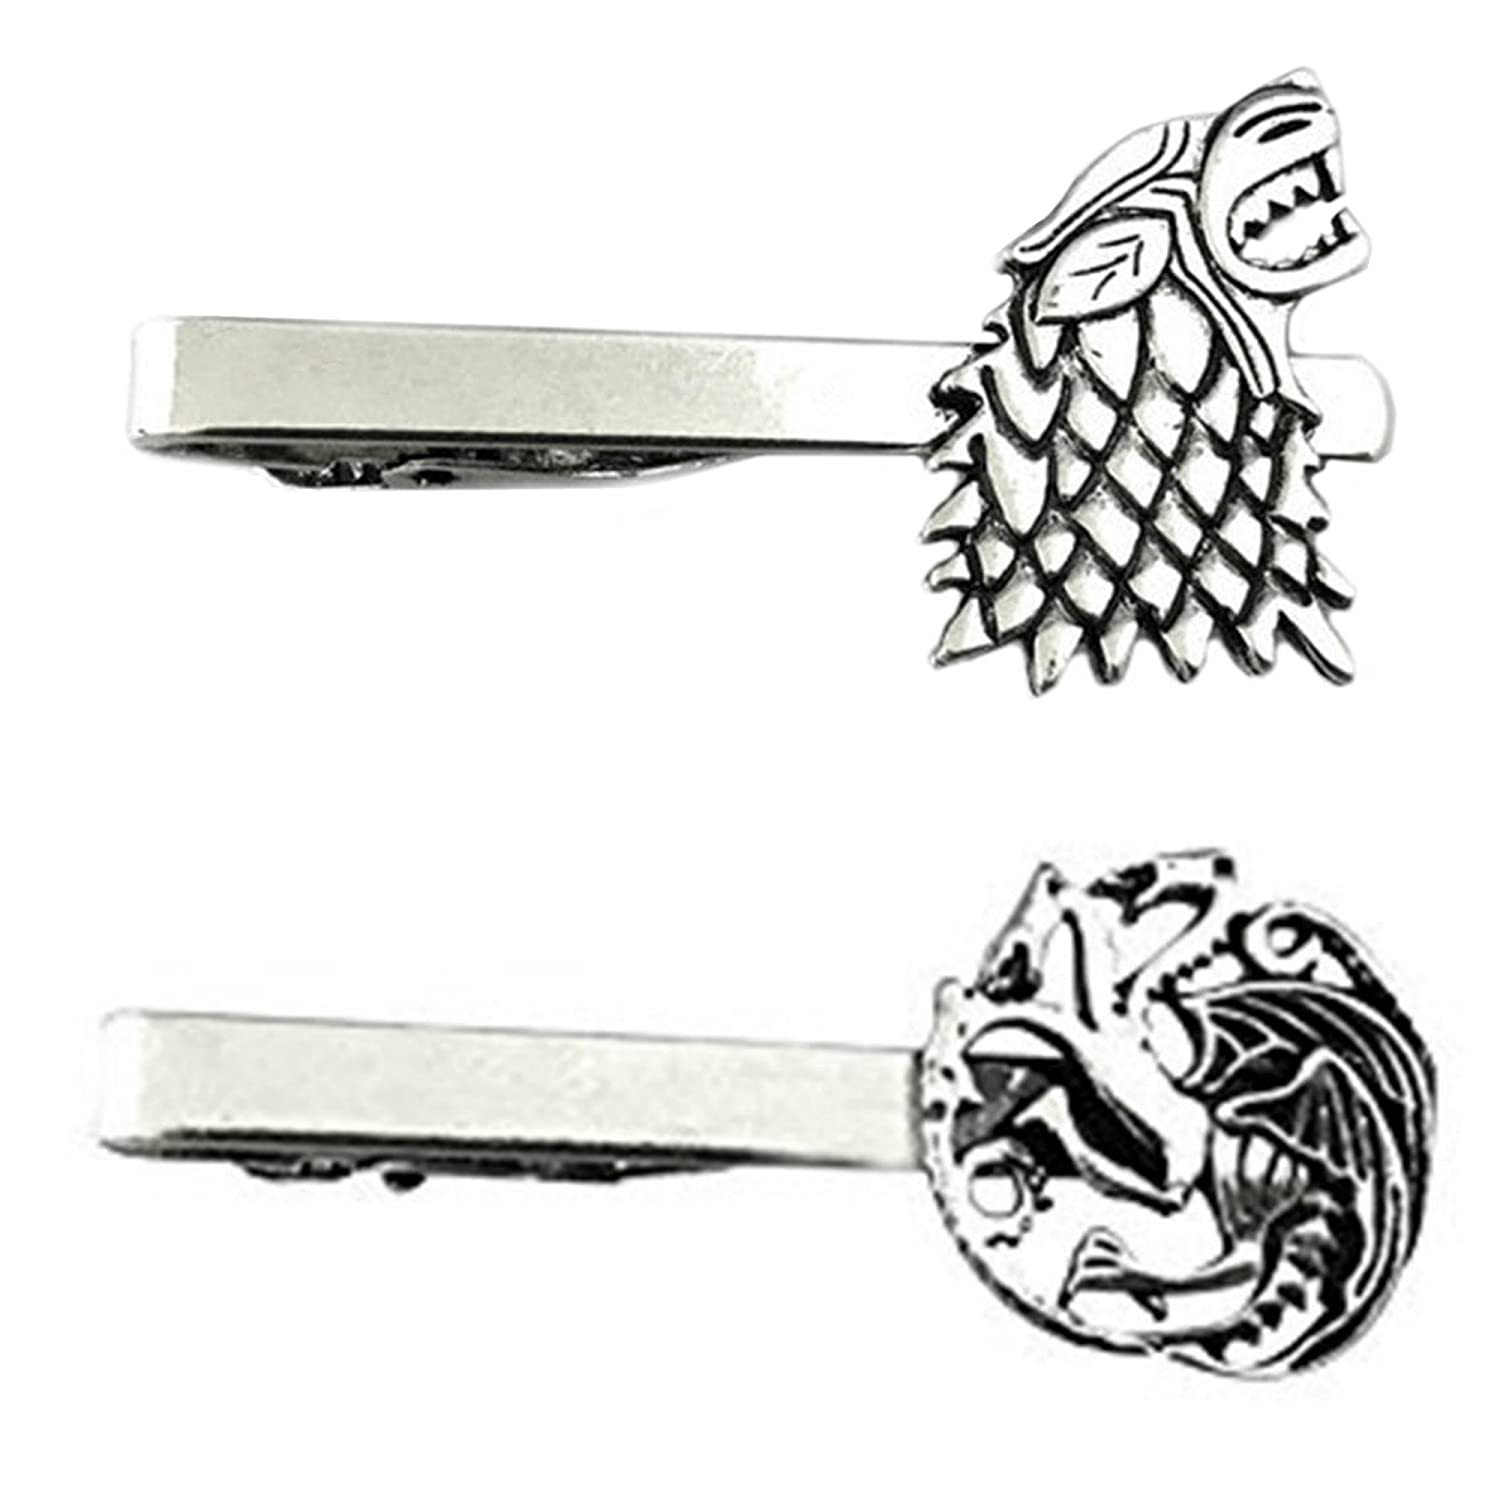 Outlander Game of Thrones - House Stark & House Targaryen - Tiebar Tie Clasp Set of 2 Wedding Superhero Logo w/Gift Box Outlander Brand